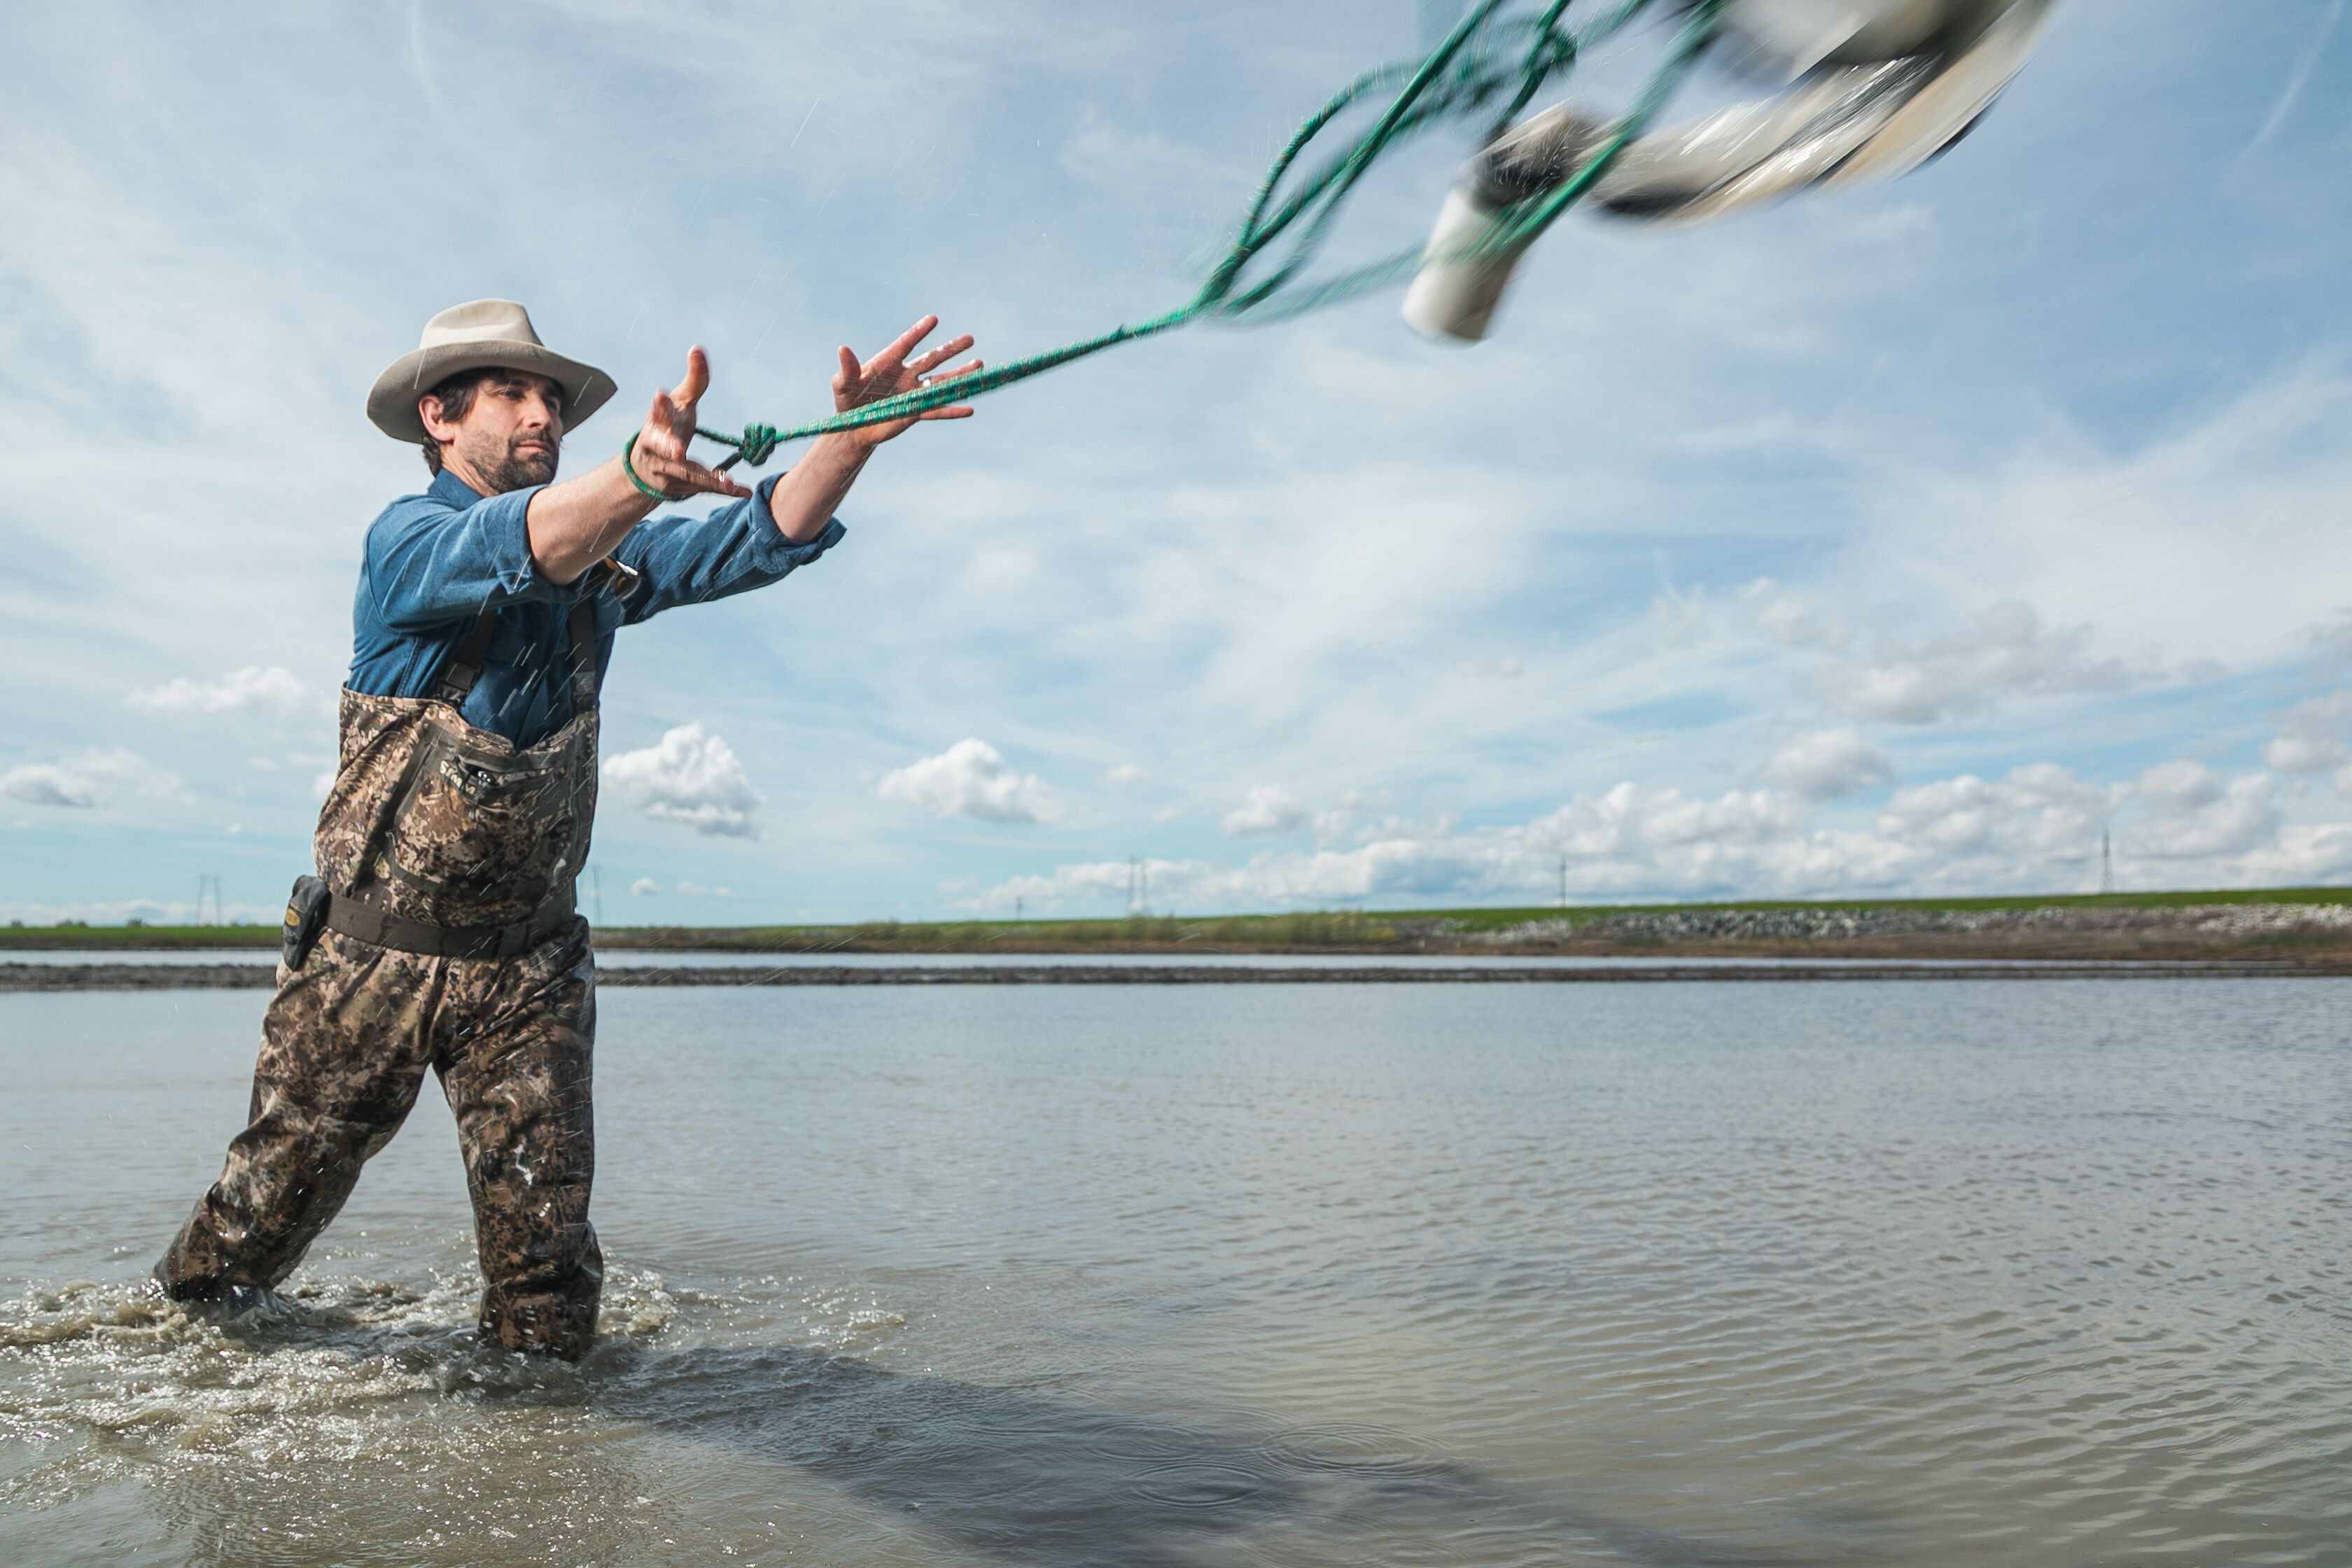 Jacob Katz throws a siphon to collect a water sample in a flooded rice field near the Sacramento River.